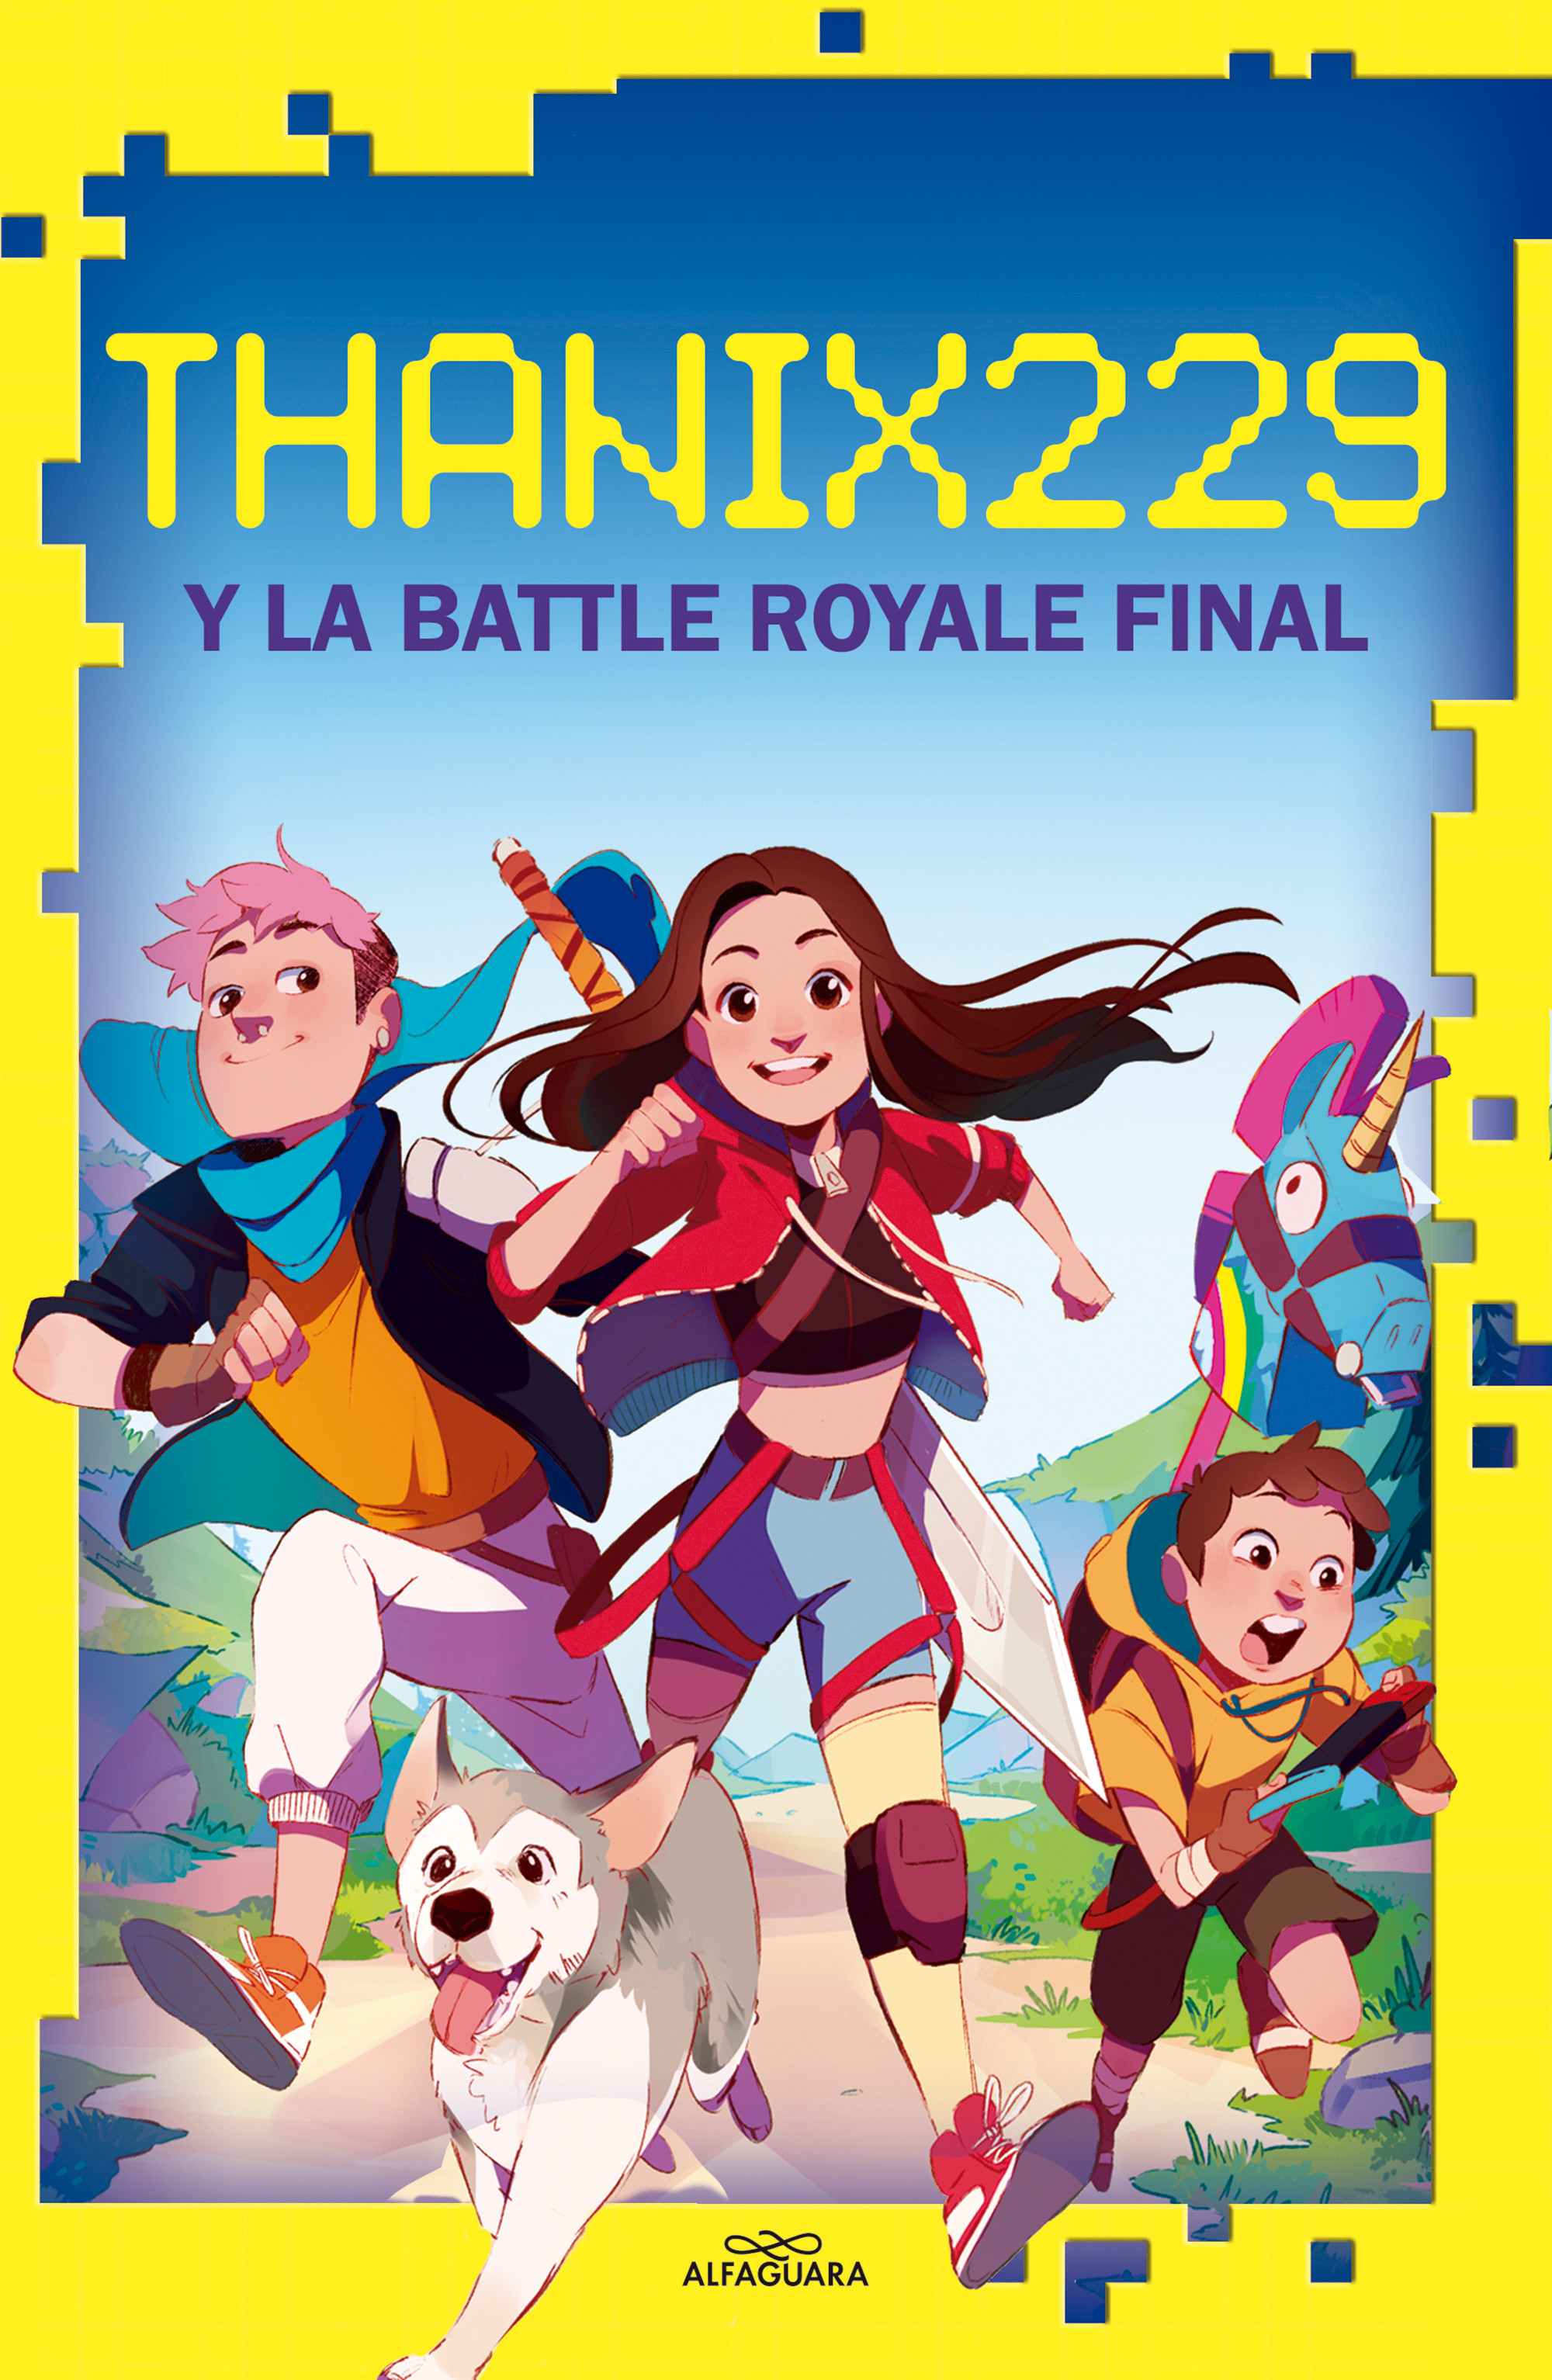 Thanix229 y la Battle Royale final